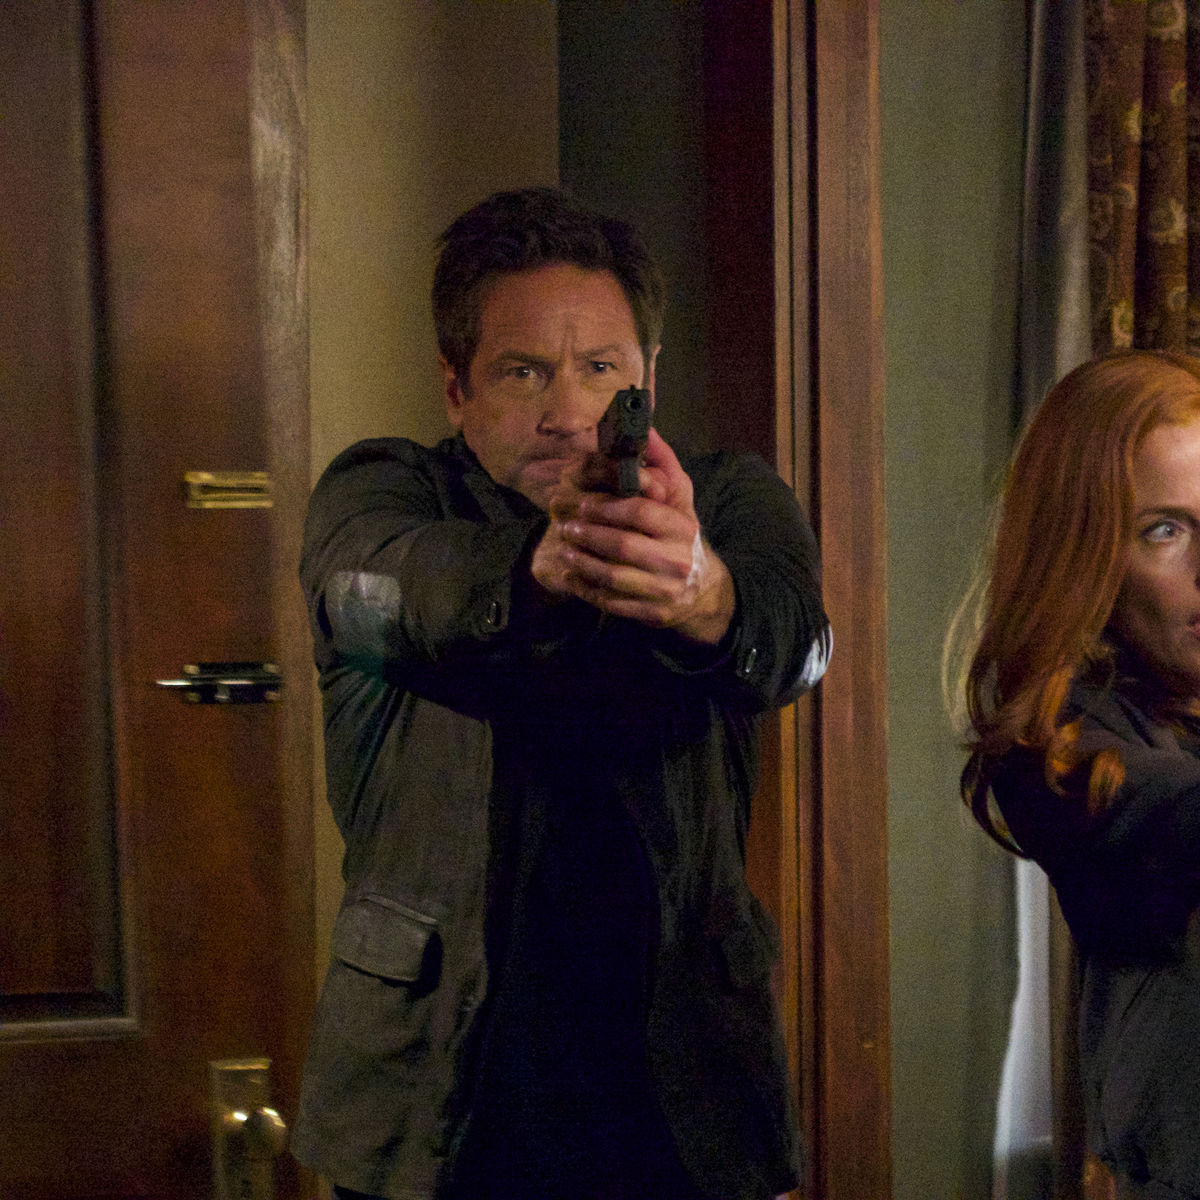 x-files-episode-1102-this_1.jpg